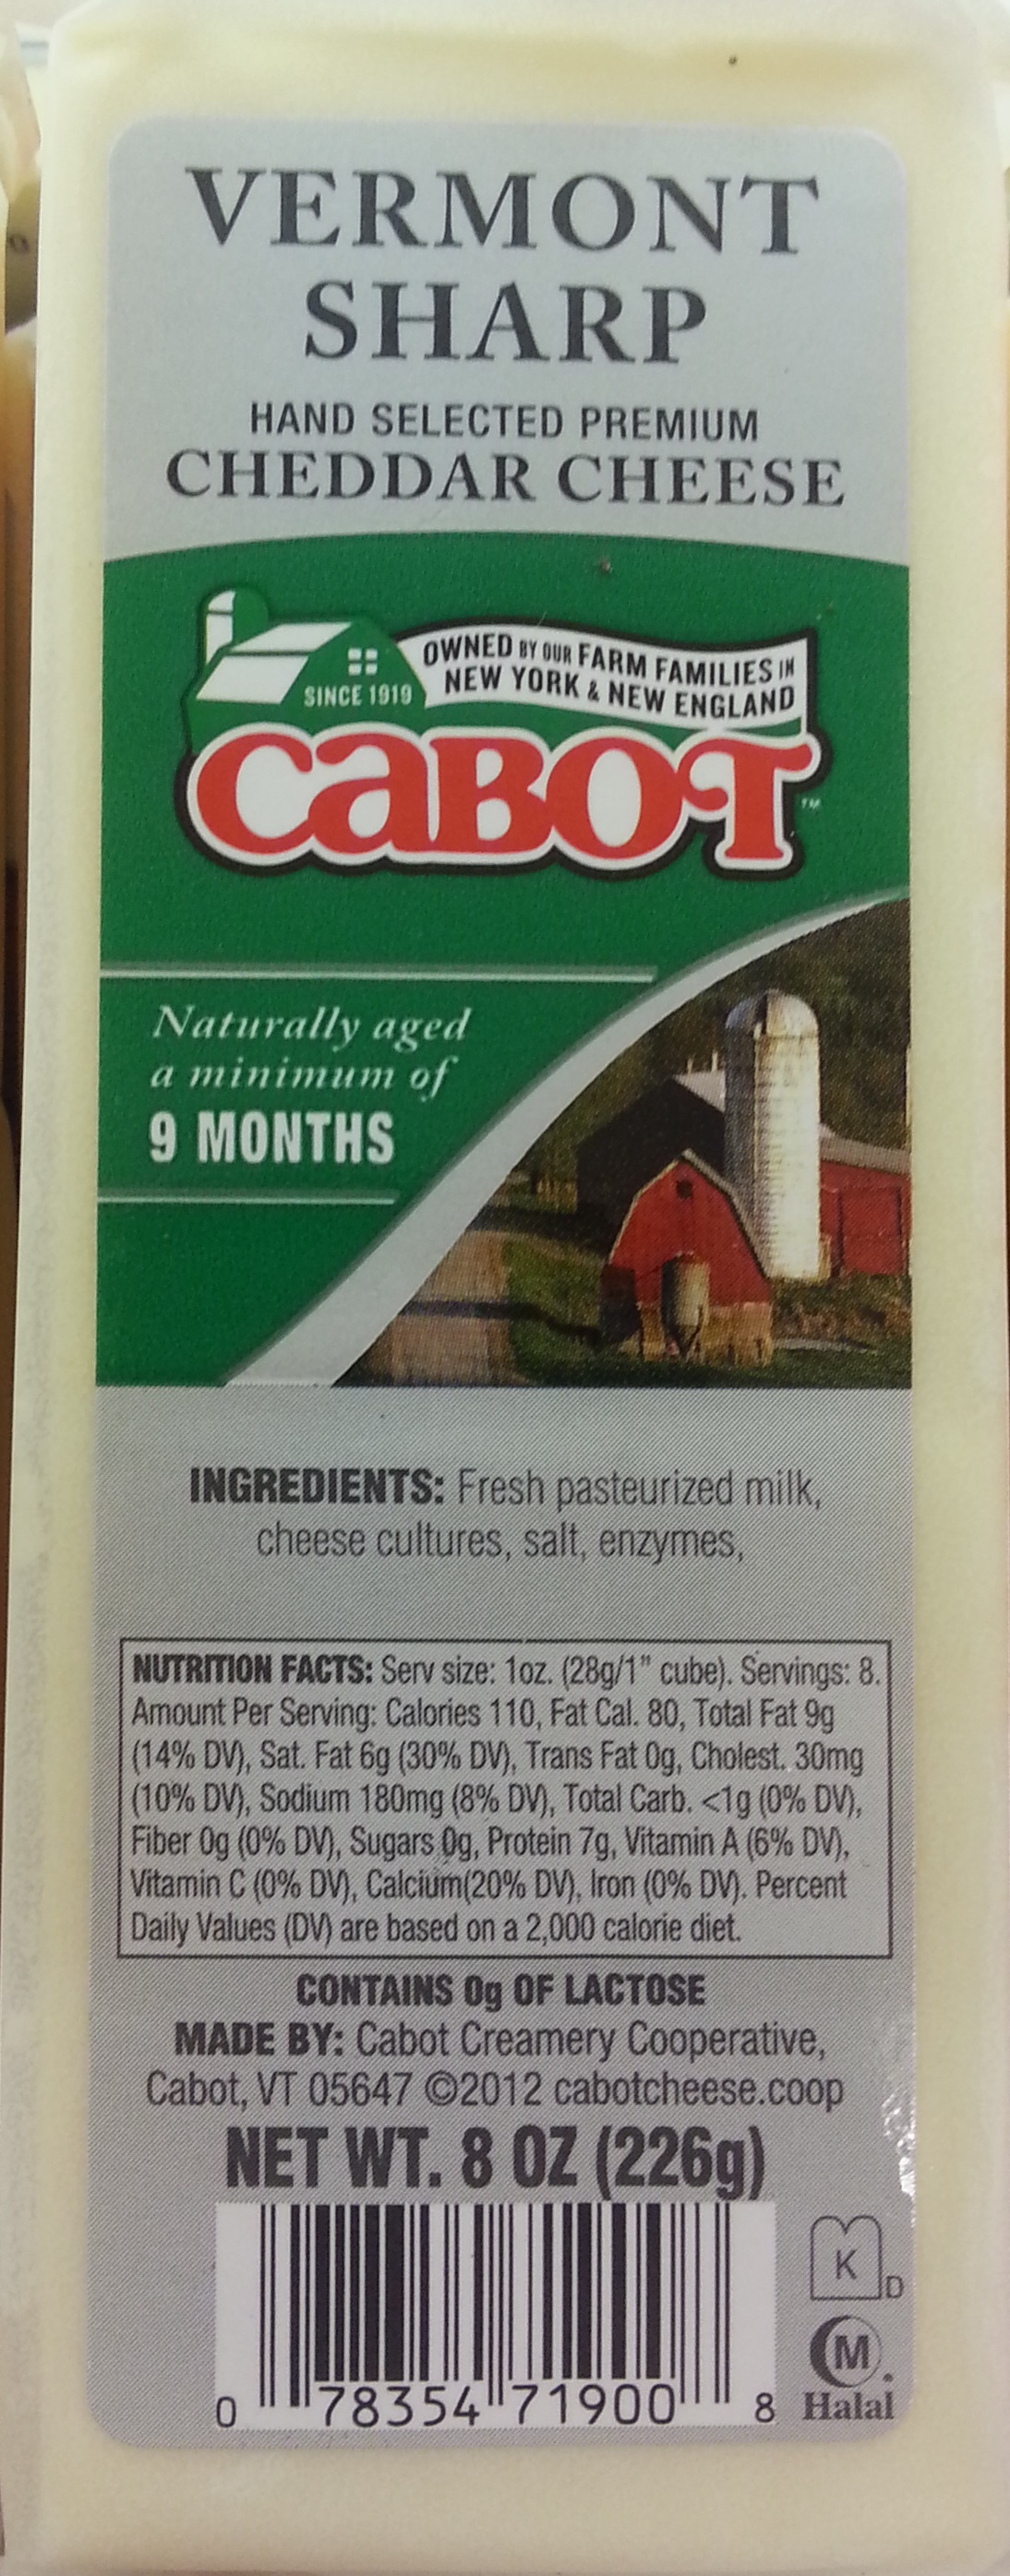 Cabot, vermont sharp, hand selected premium cheddar cheese - Product - en